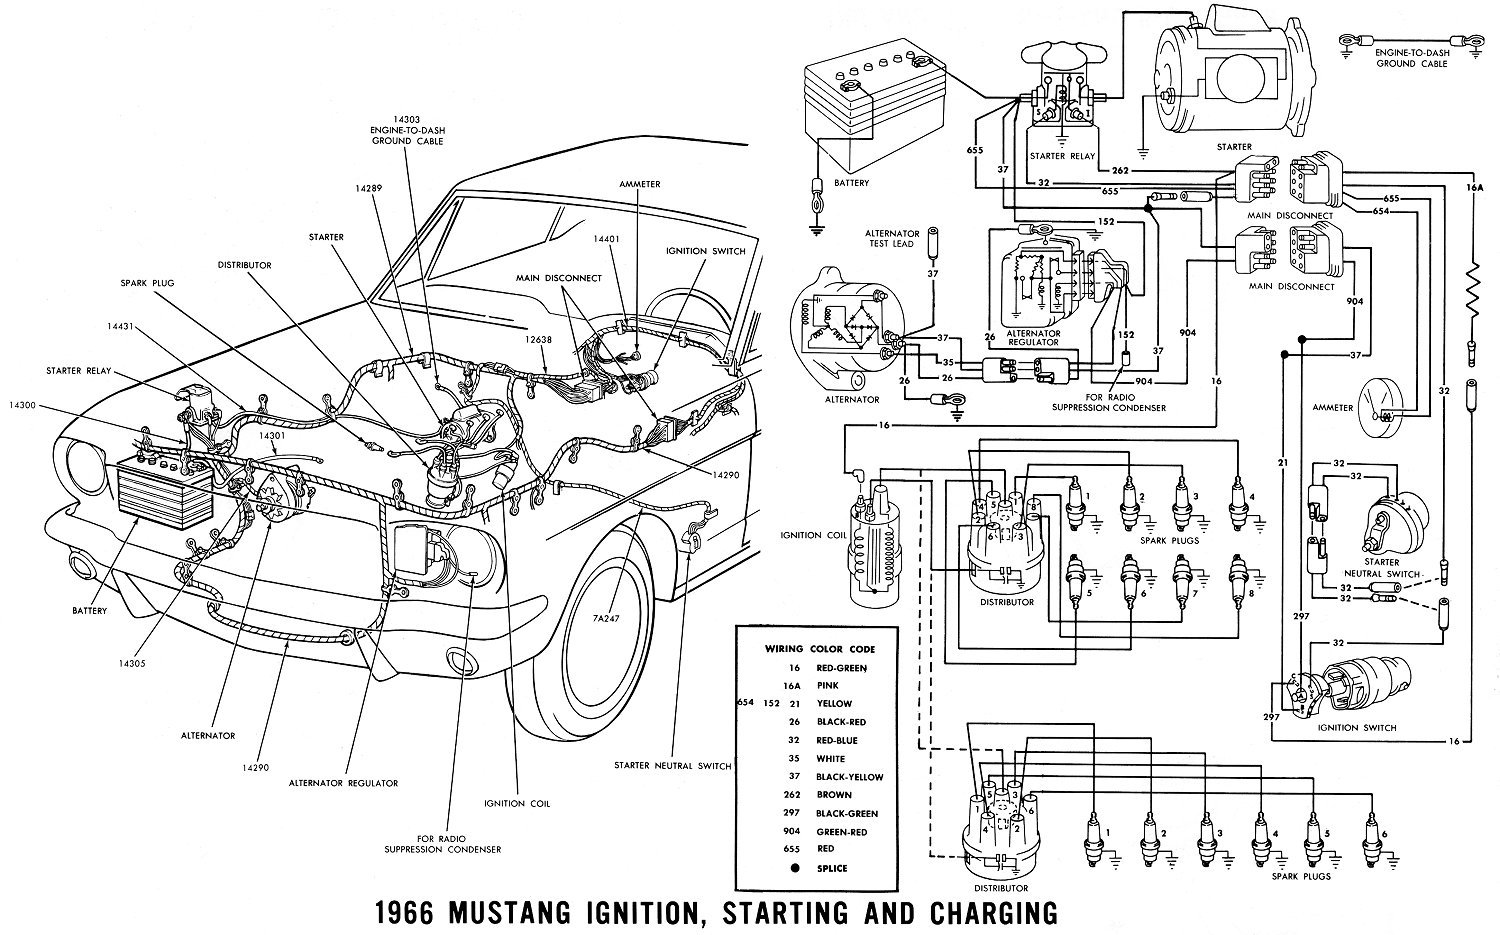 1965 mustang ignition coil wiring diagram definition 1966 switch what pins are